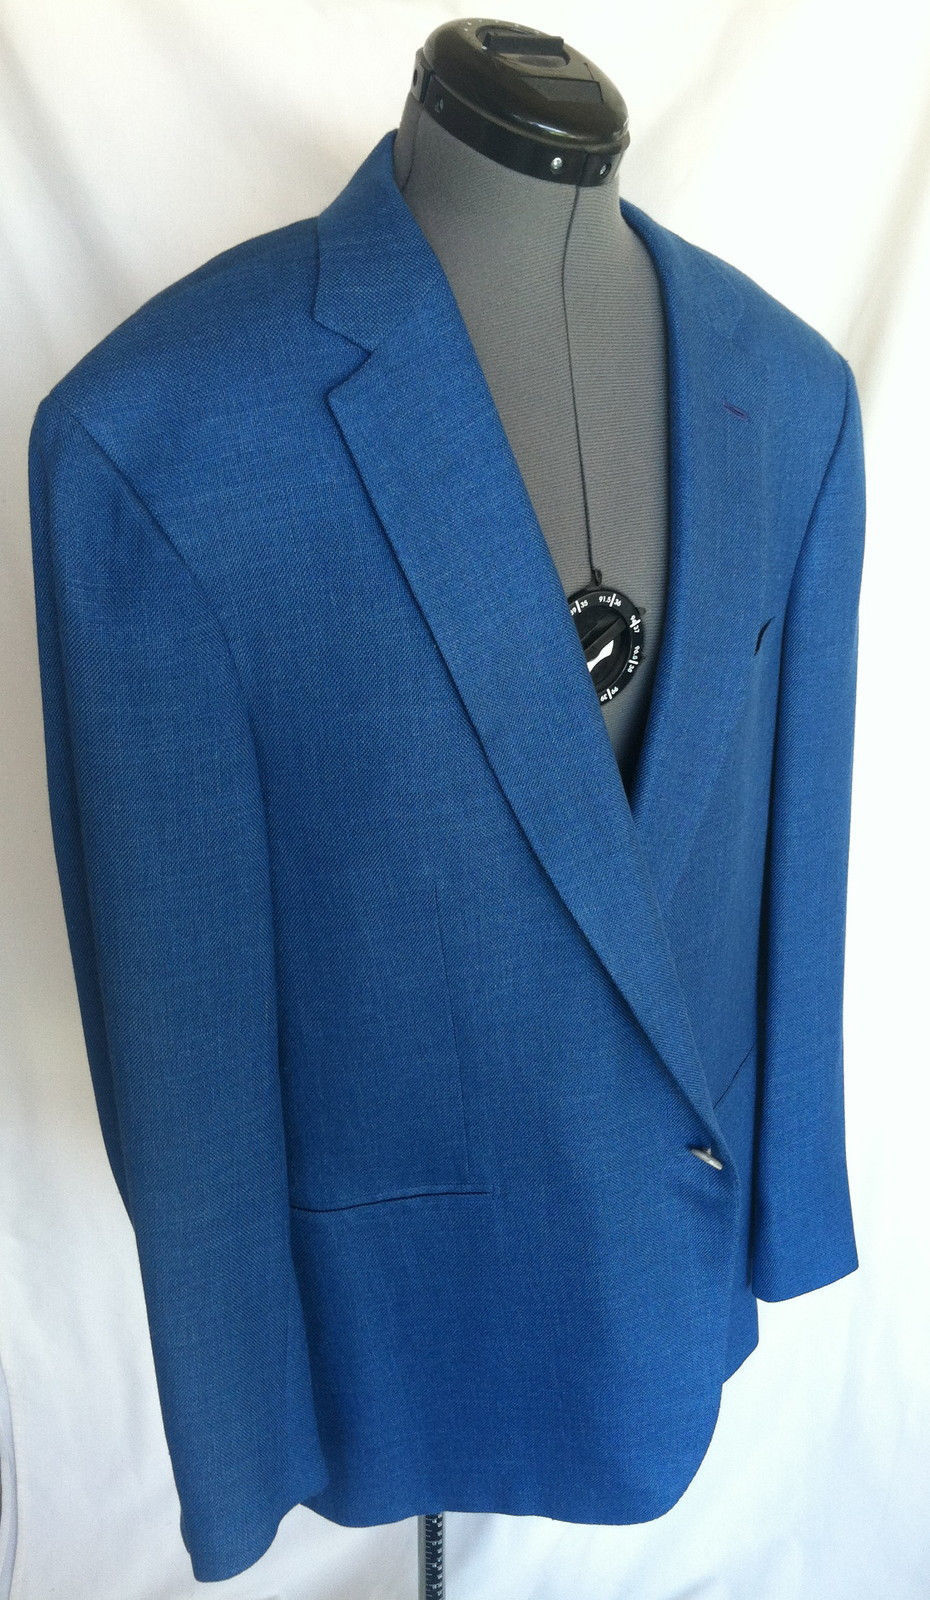 Primary image for BRIONI for Neiman Marcus Blazer Coat 46 r Medium Blue Brunico FLAWLESS